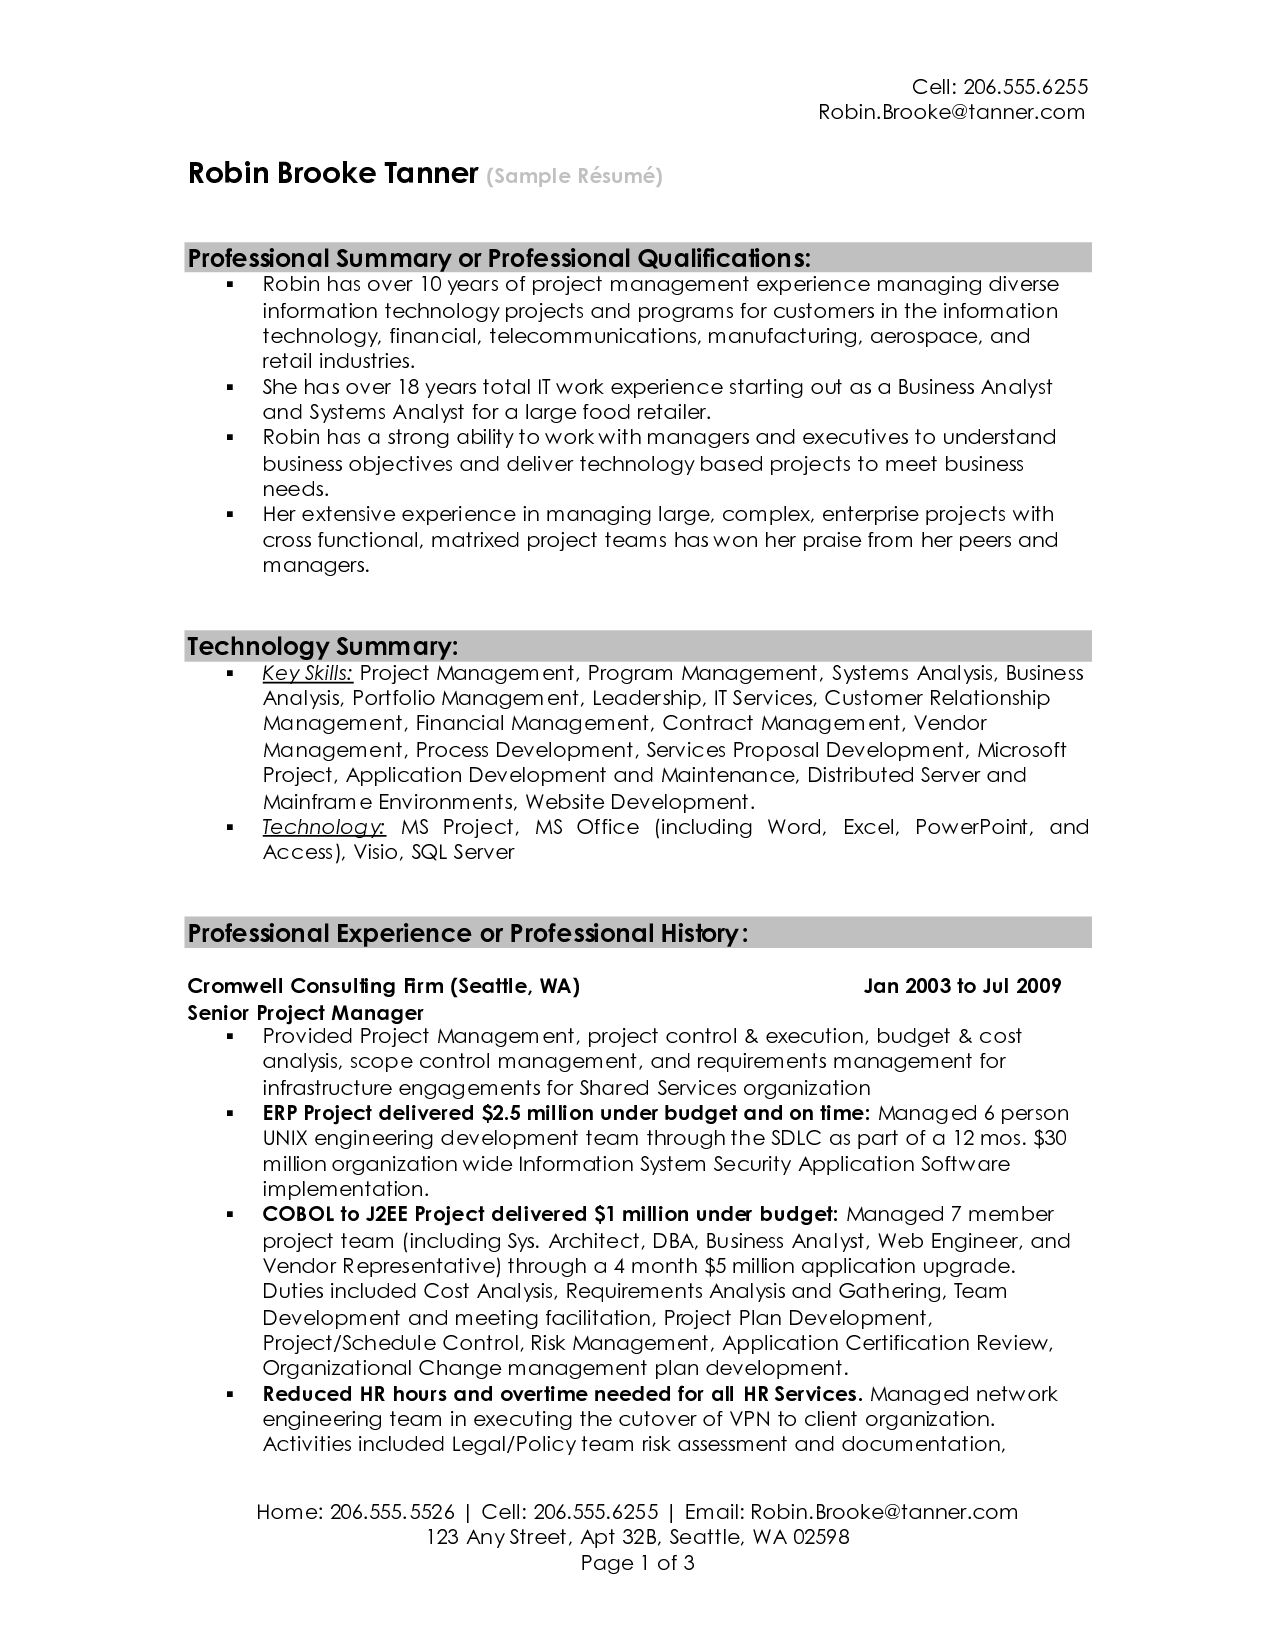 Example of a professional summary for a resume